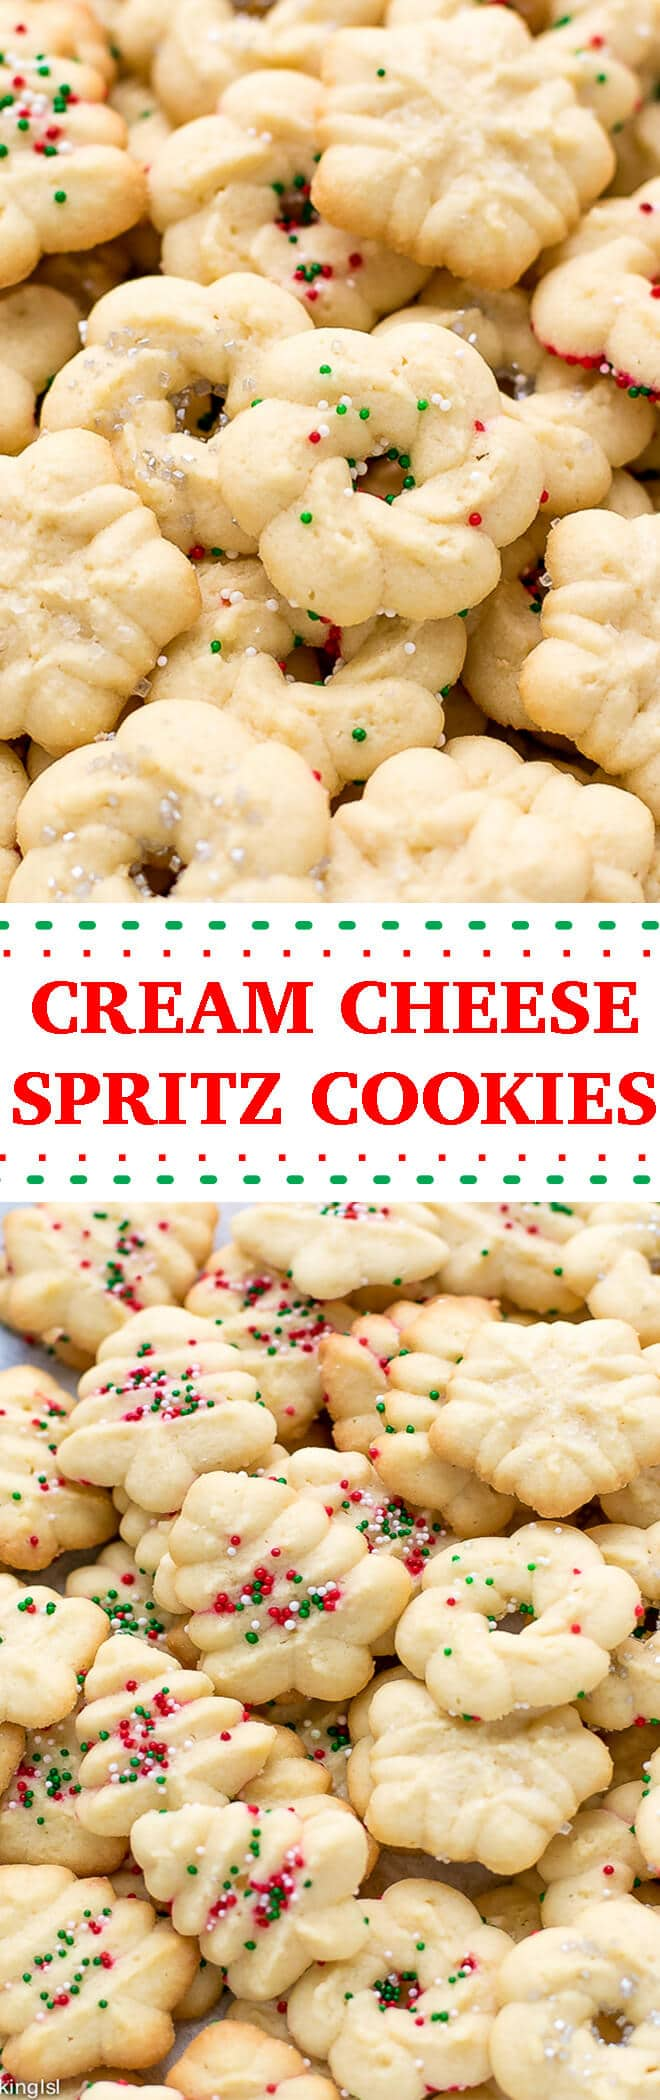 Easy Cream Cheese Spritz Cookies Recipe - made with a cookie press, soft, buttery, sweet and delicious! Very easy to make with minimal effort, perfect for the holidays or a party!